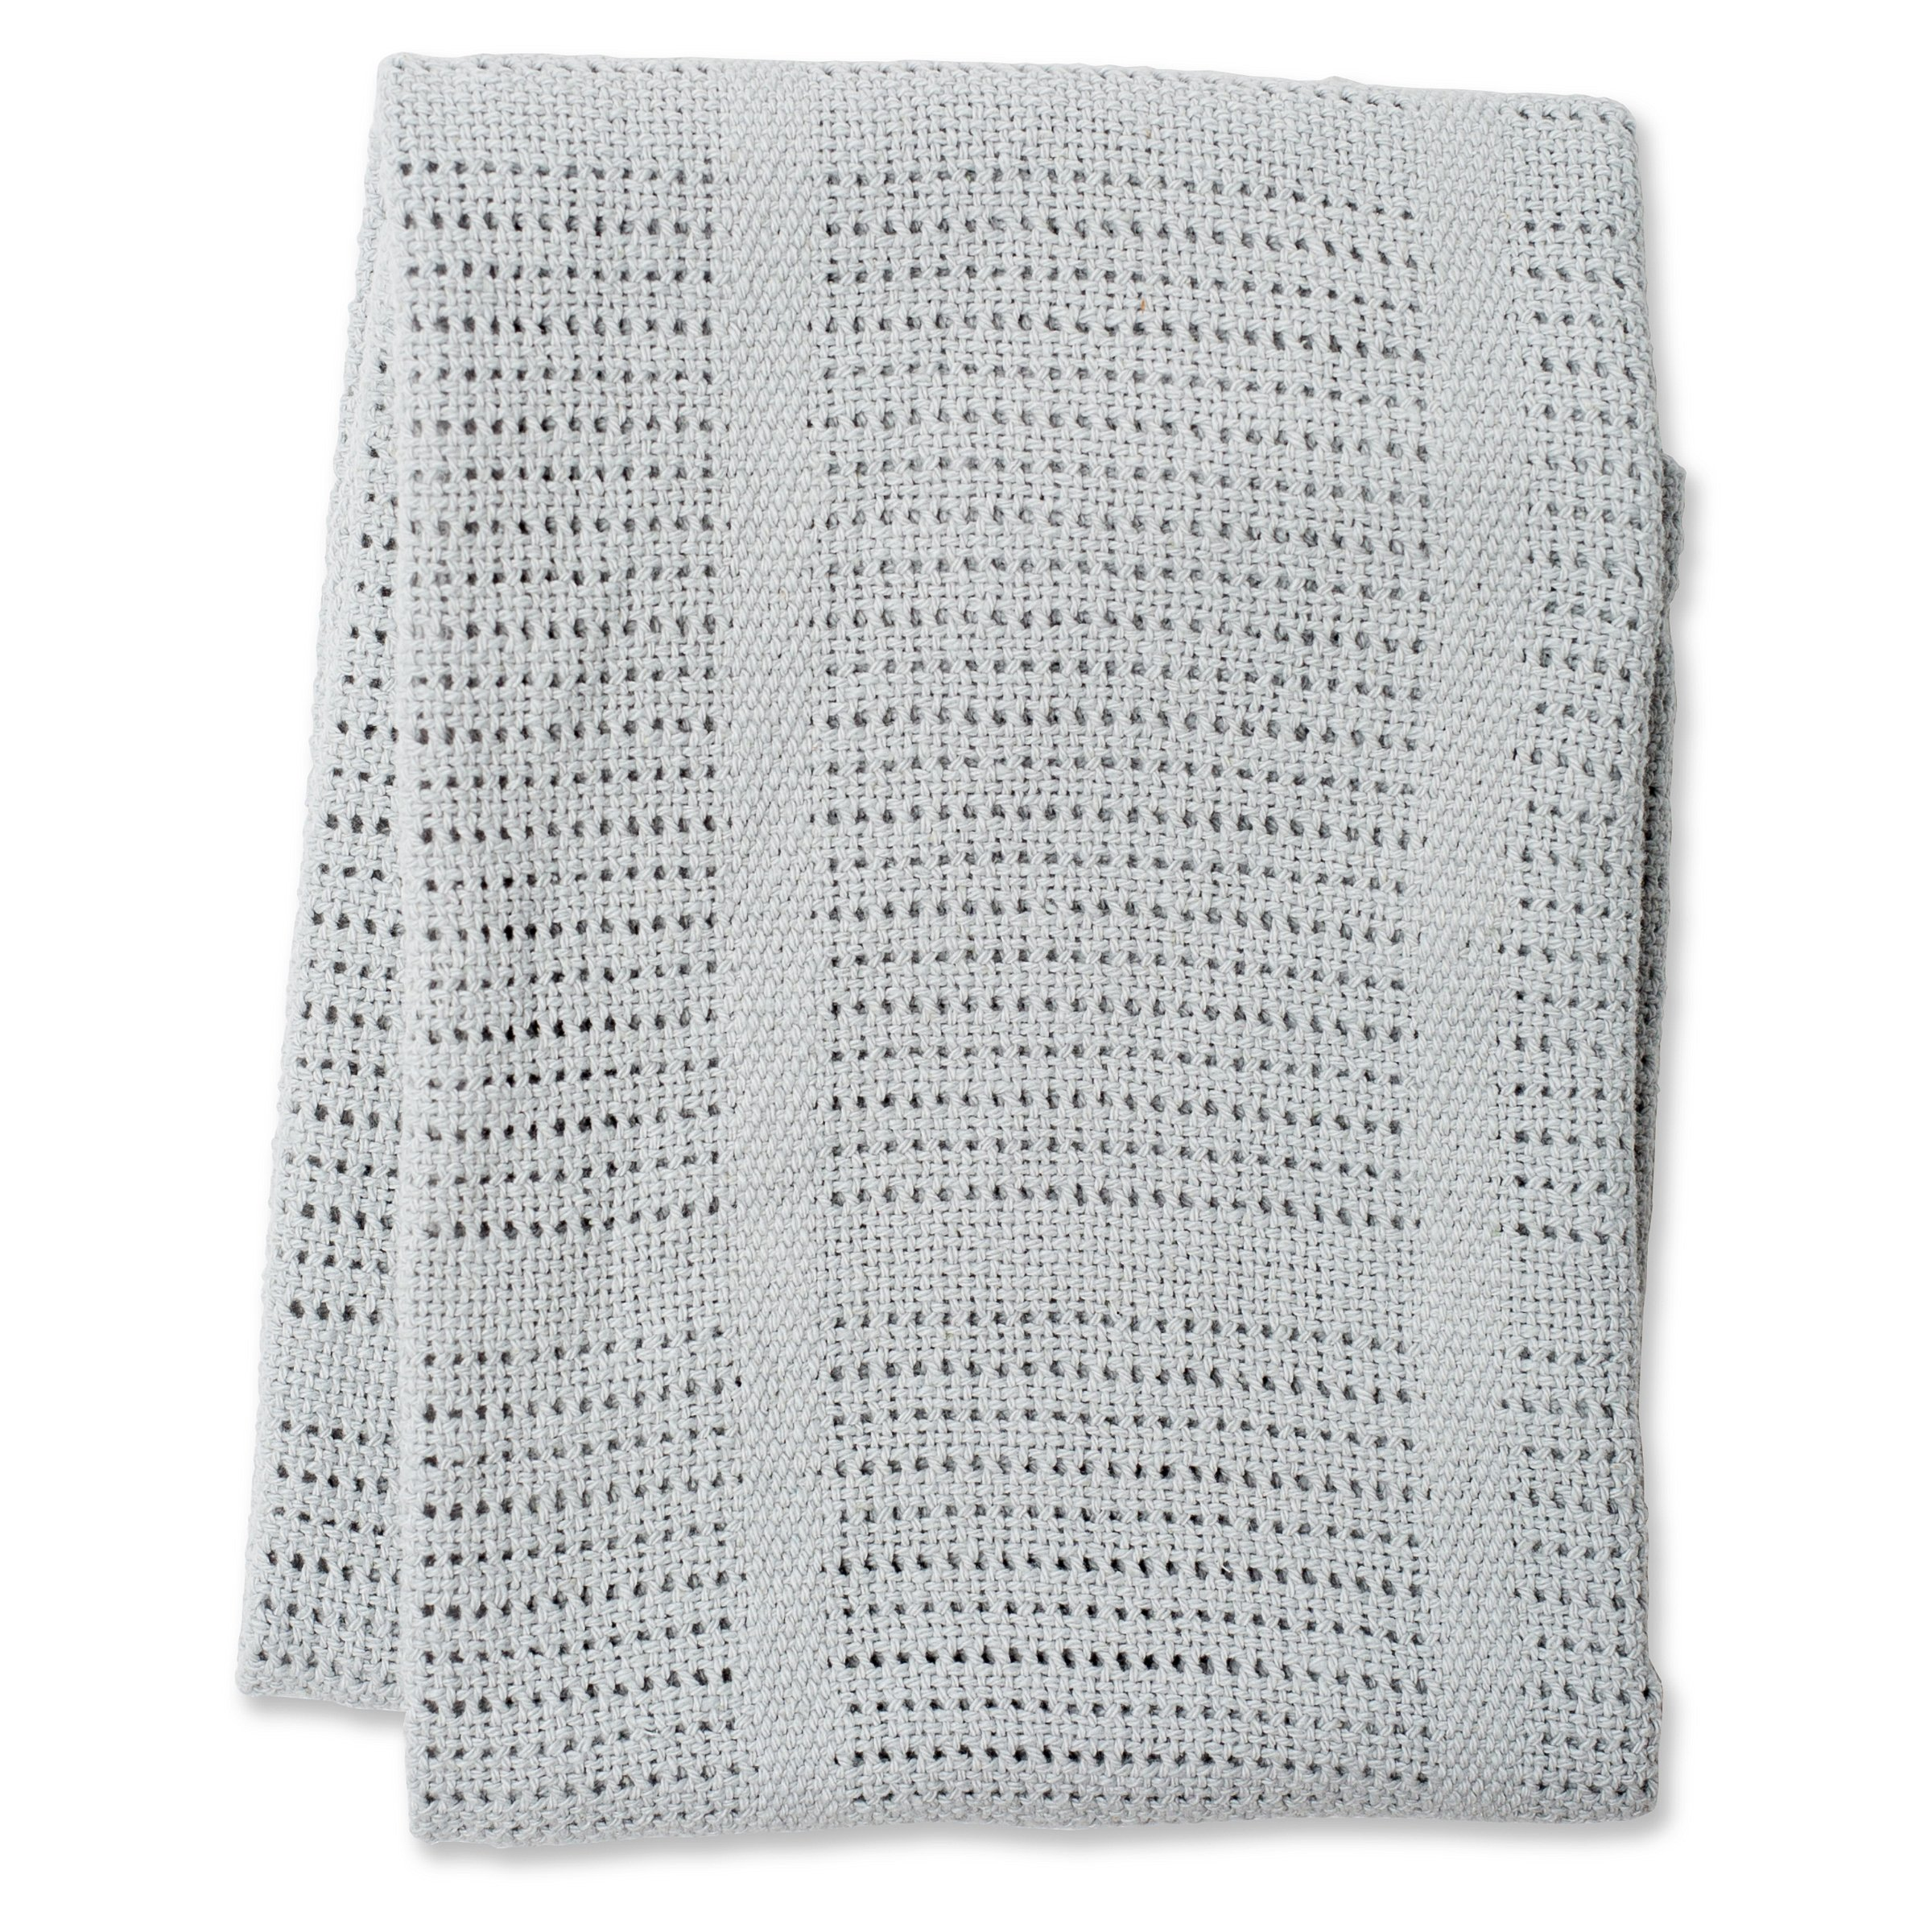 Lulujo Cellular Blankets, Grey product image